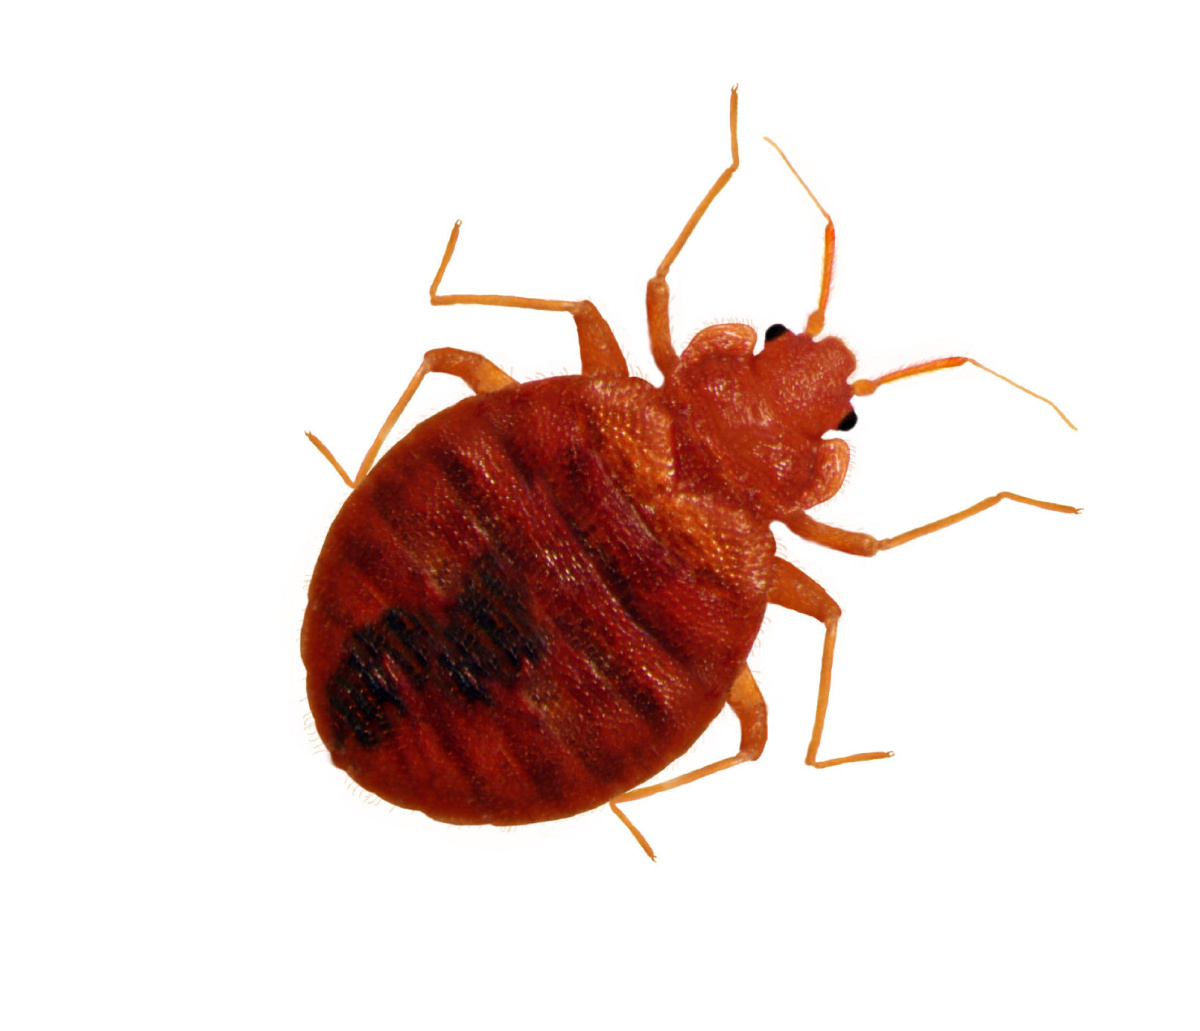 Punaise De Lit Inbreeding Allows Bed Bugs To Spread Studies Find The Star